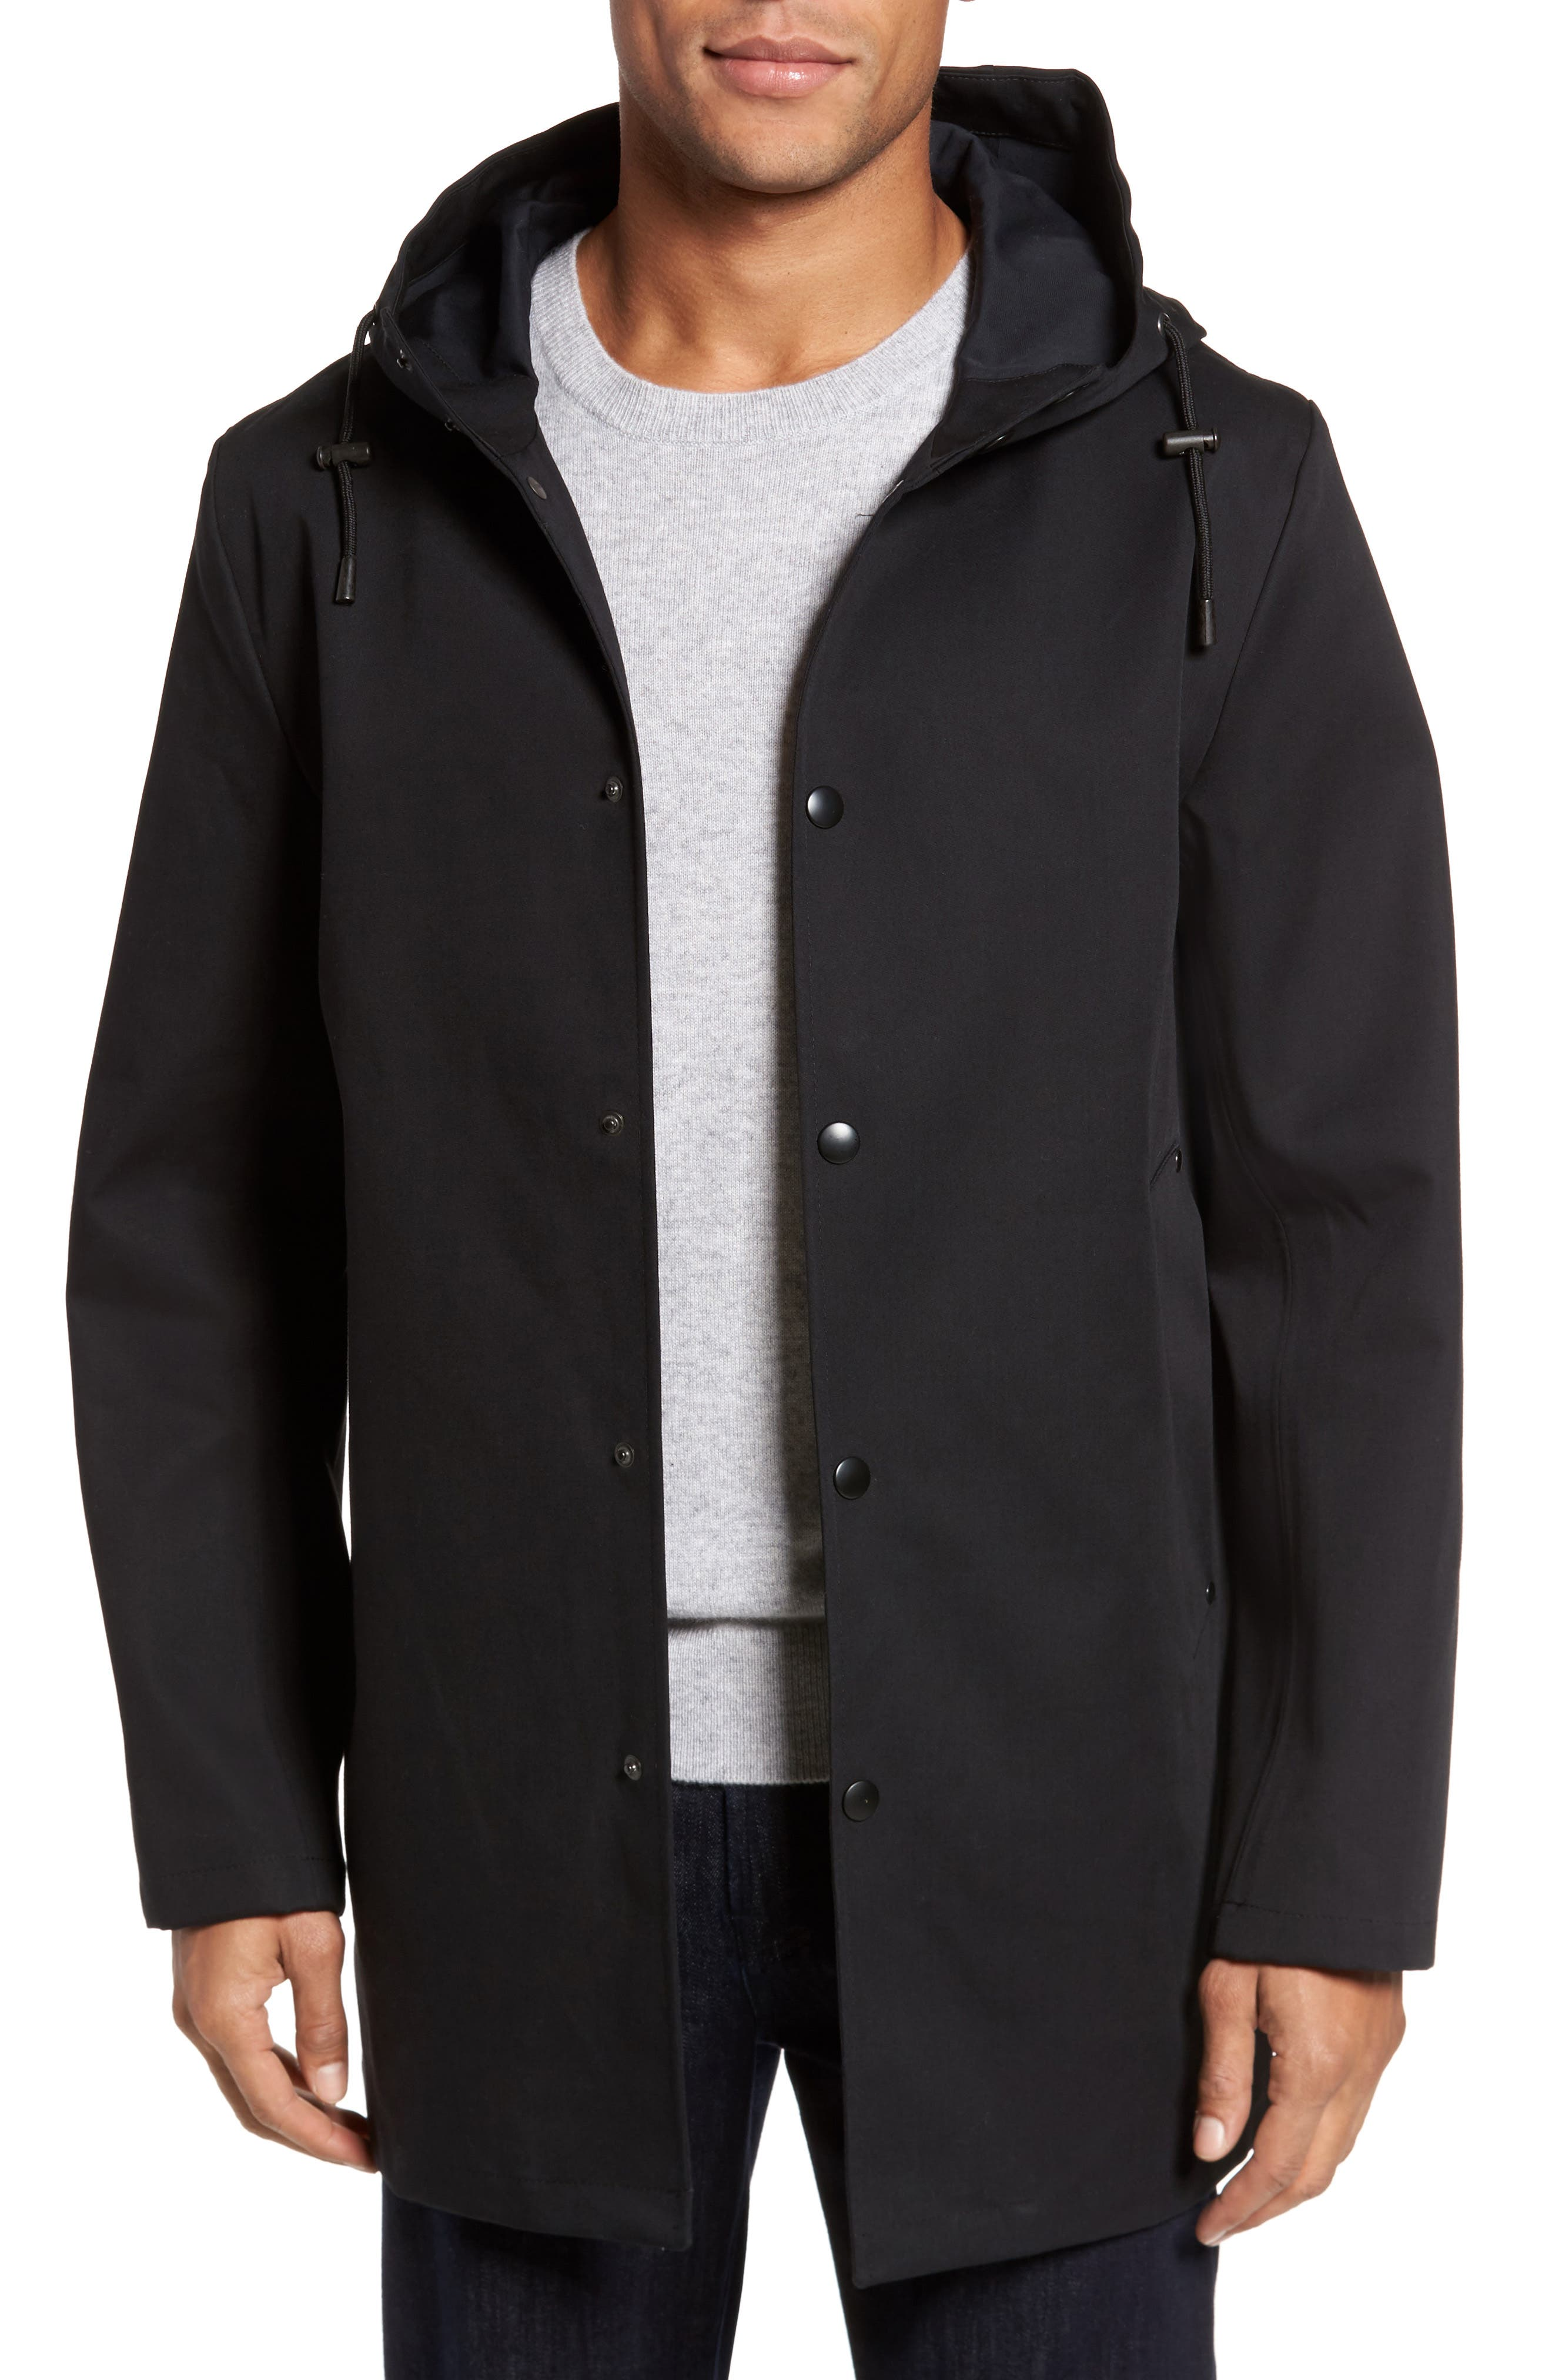 Main Image - Stutterheim Stockholm Bonded Waterproof Hooded Raincoat